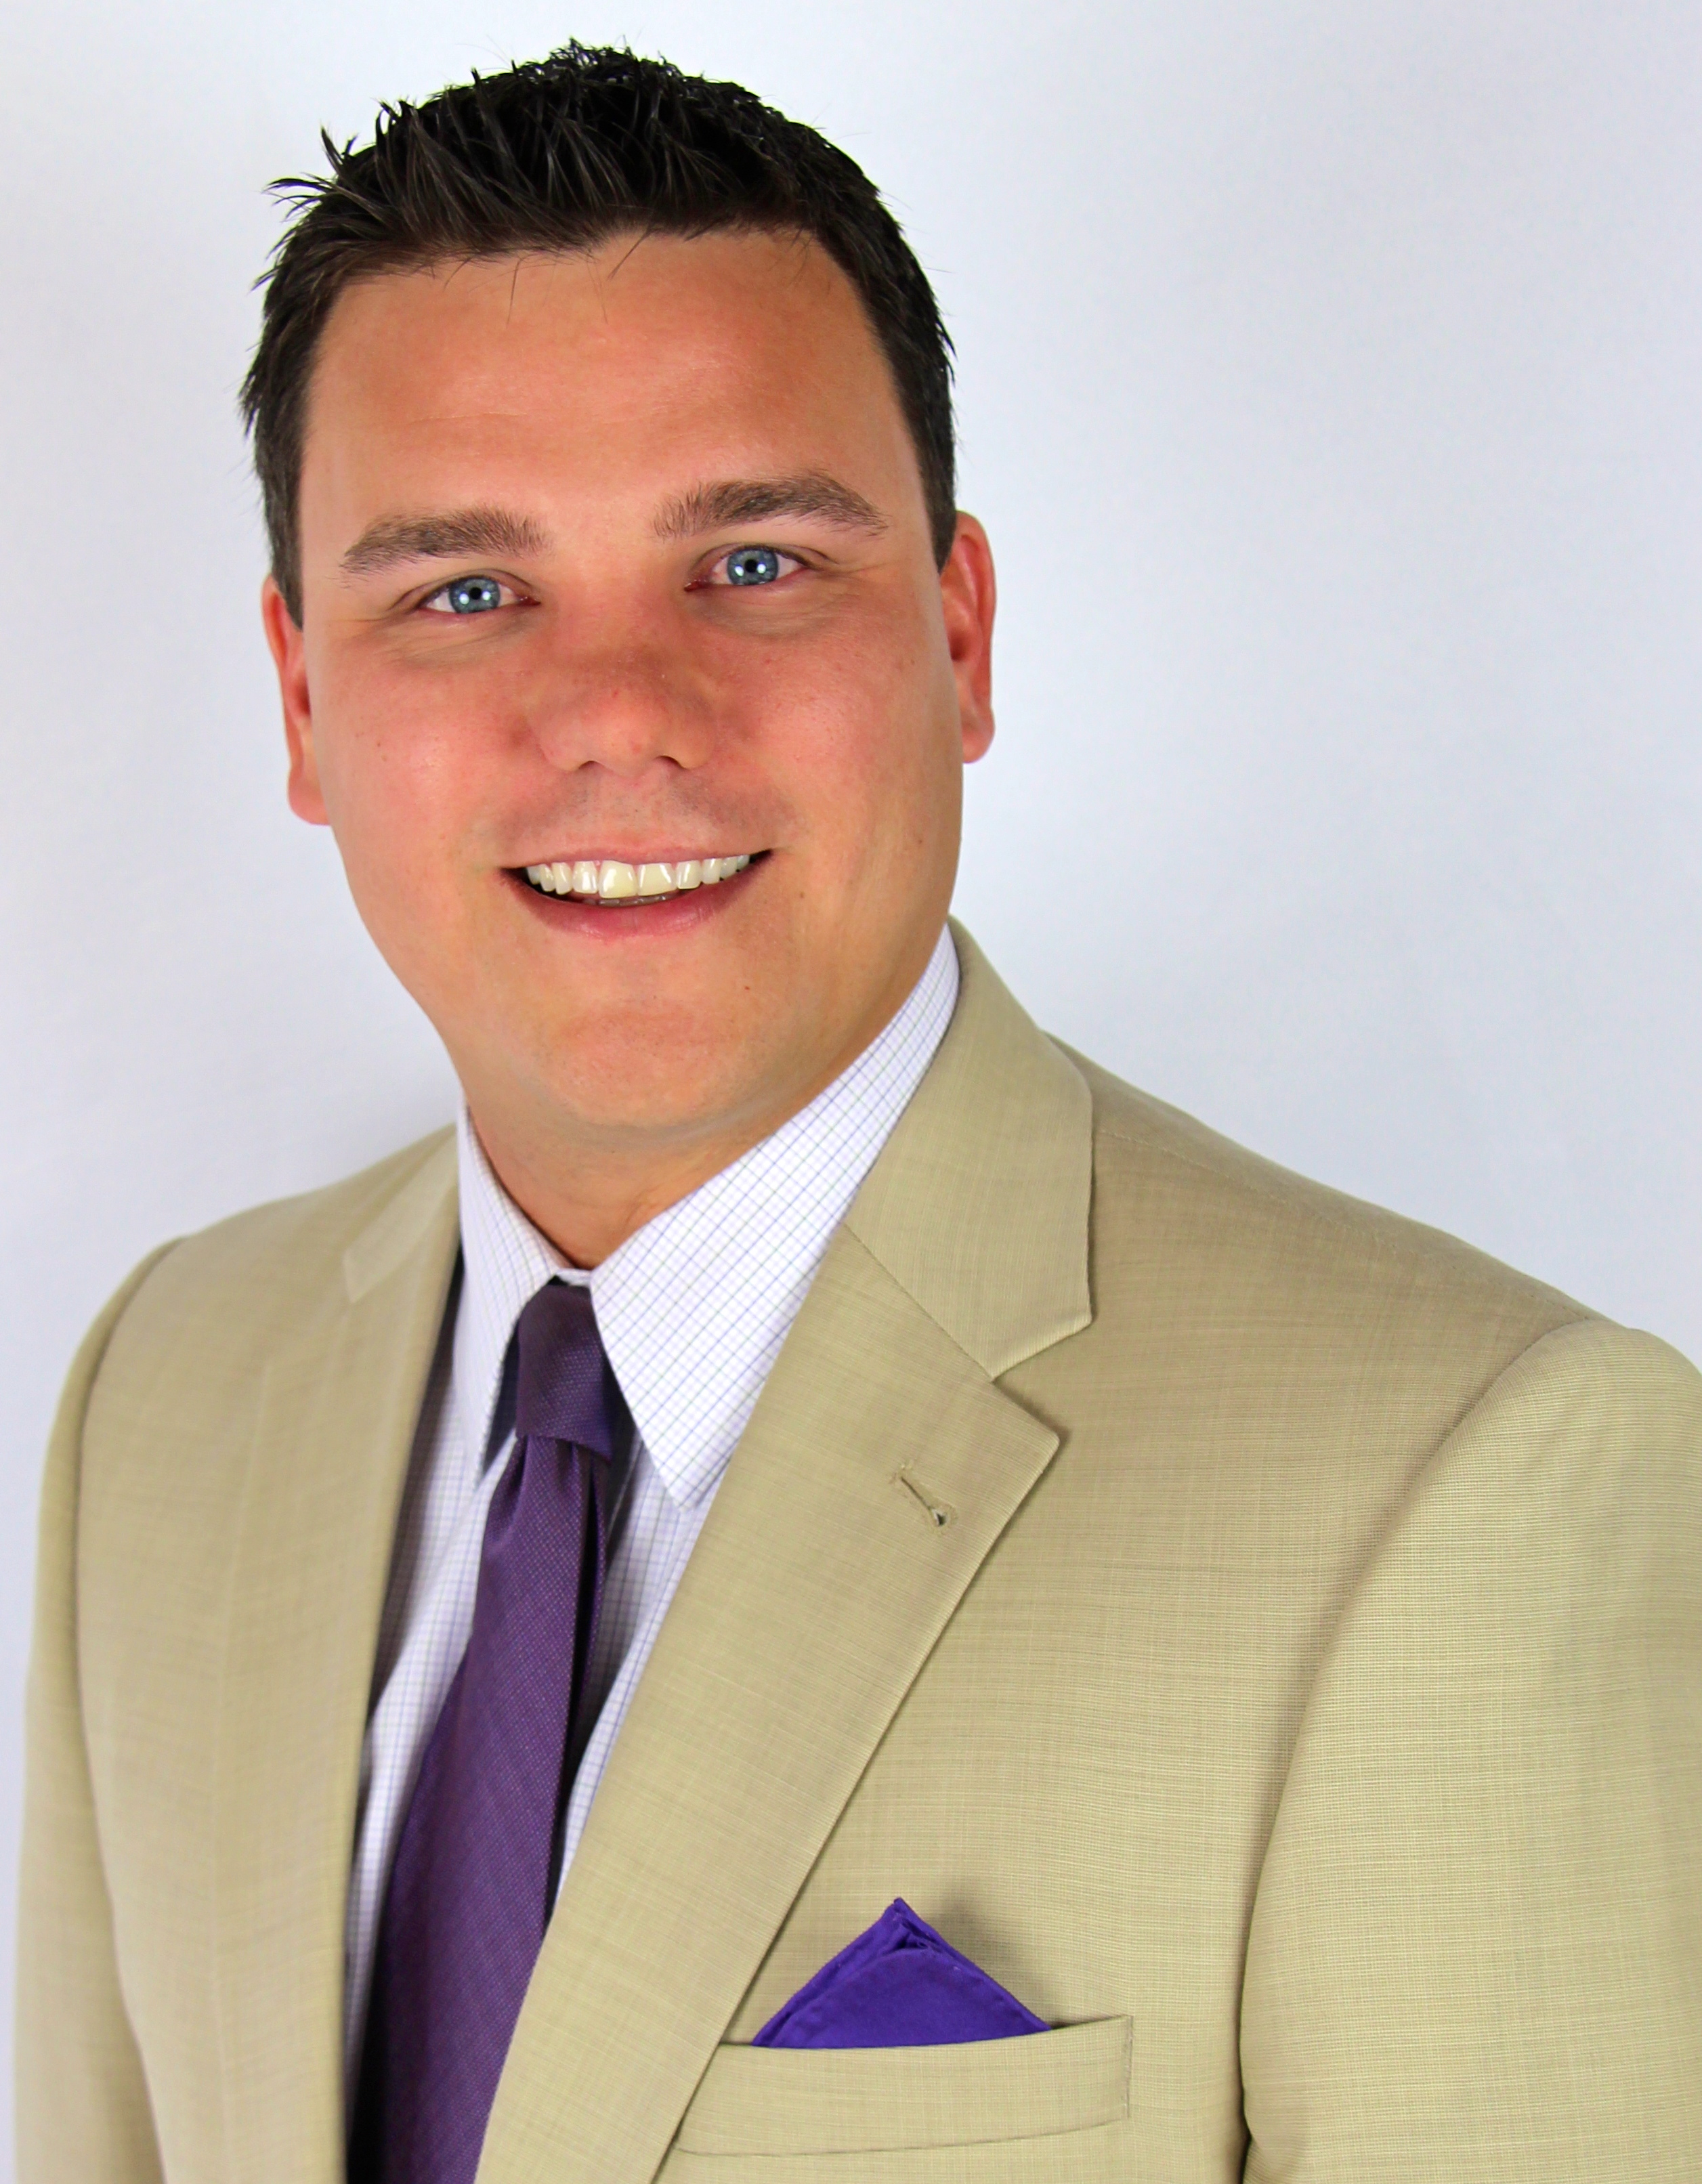 Justin Blews, financial advisor Ft. Lauderdale FL